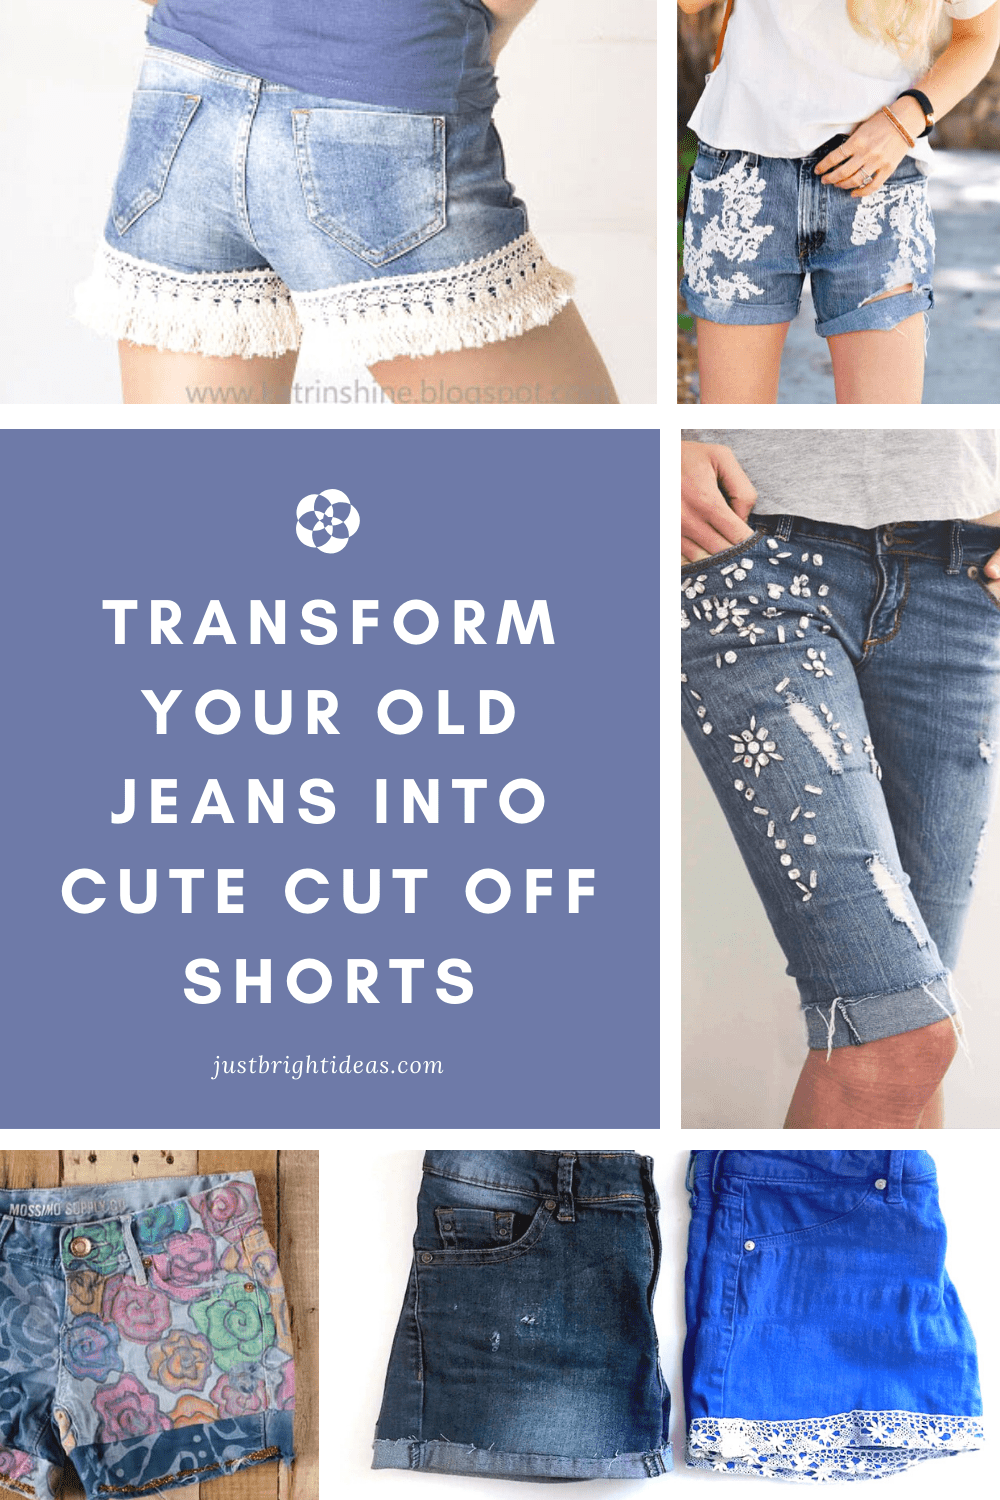 Don't throw those old worn out jeans away - it's time to upcycle them into cute cut off shorts! Check out all of the DIY ideas!